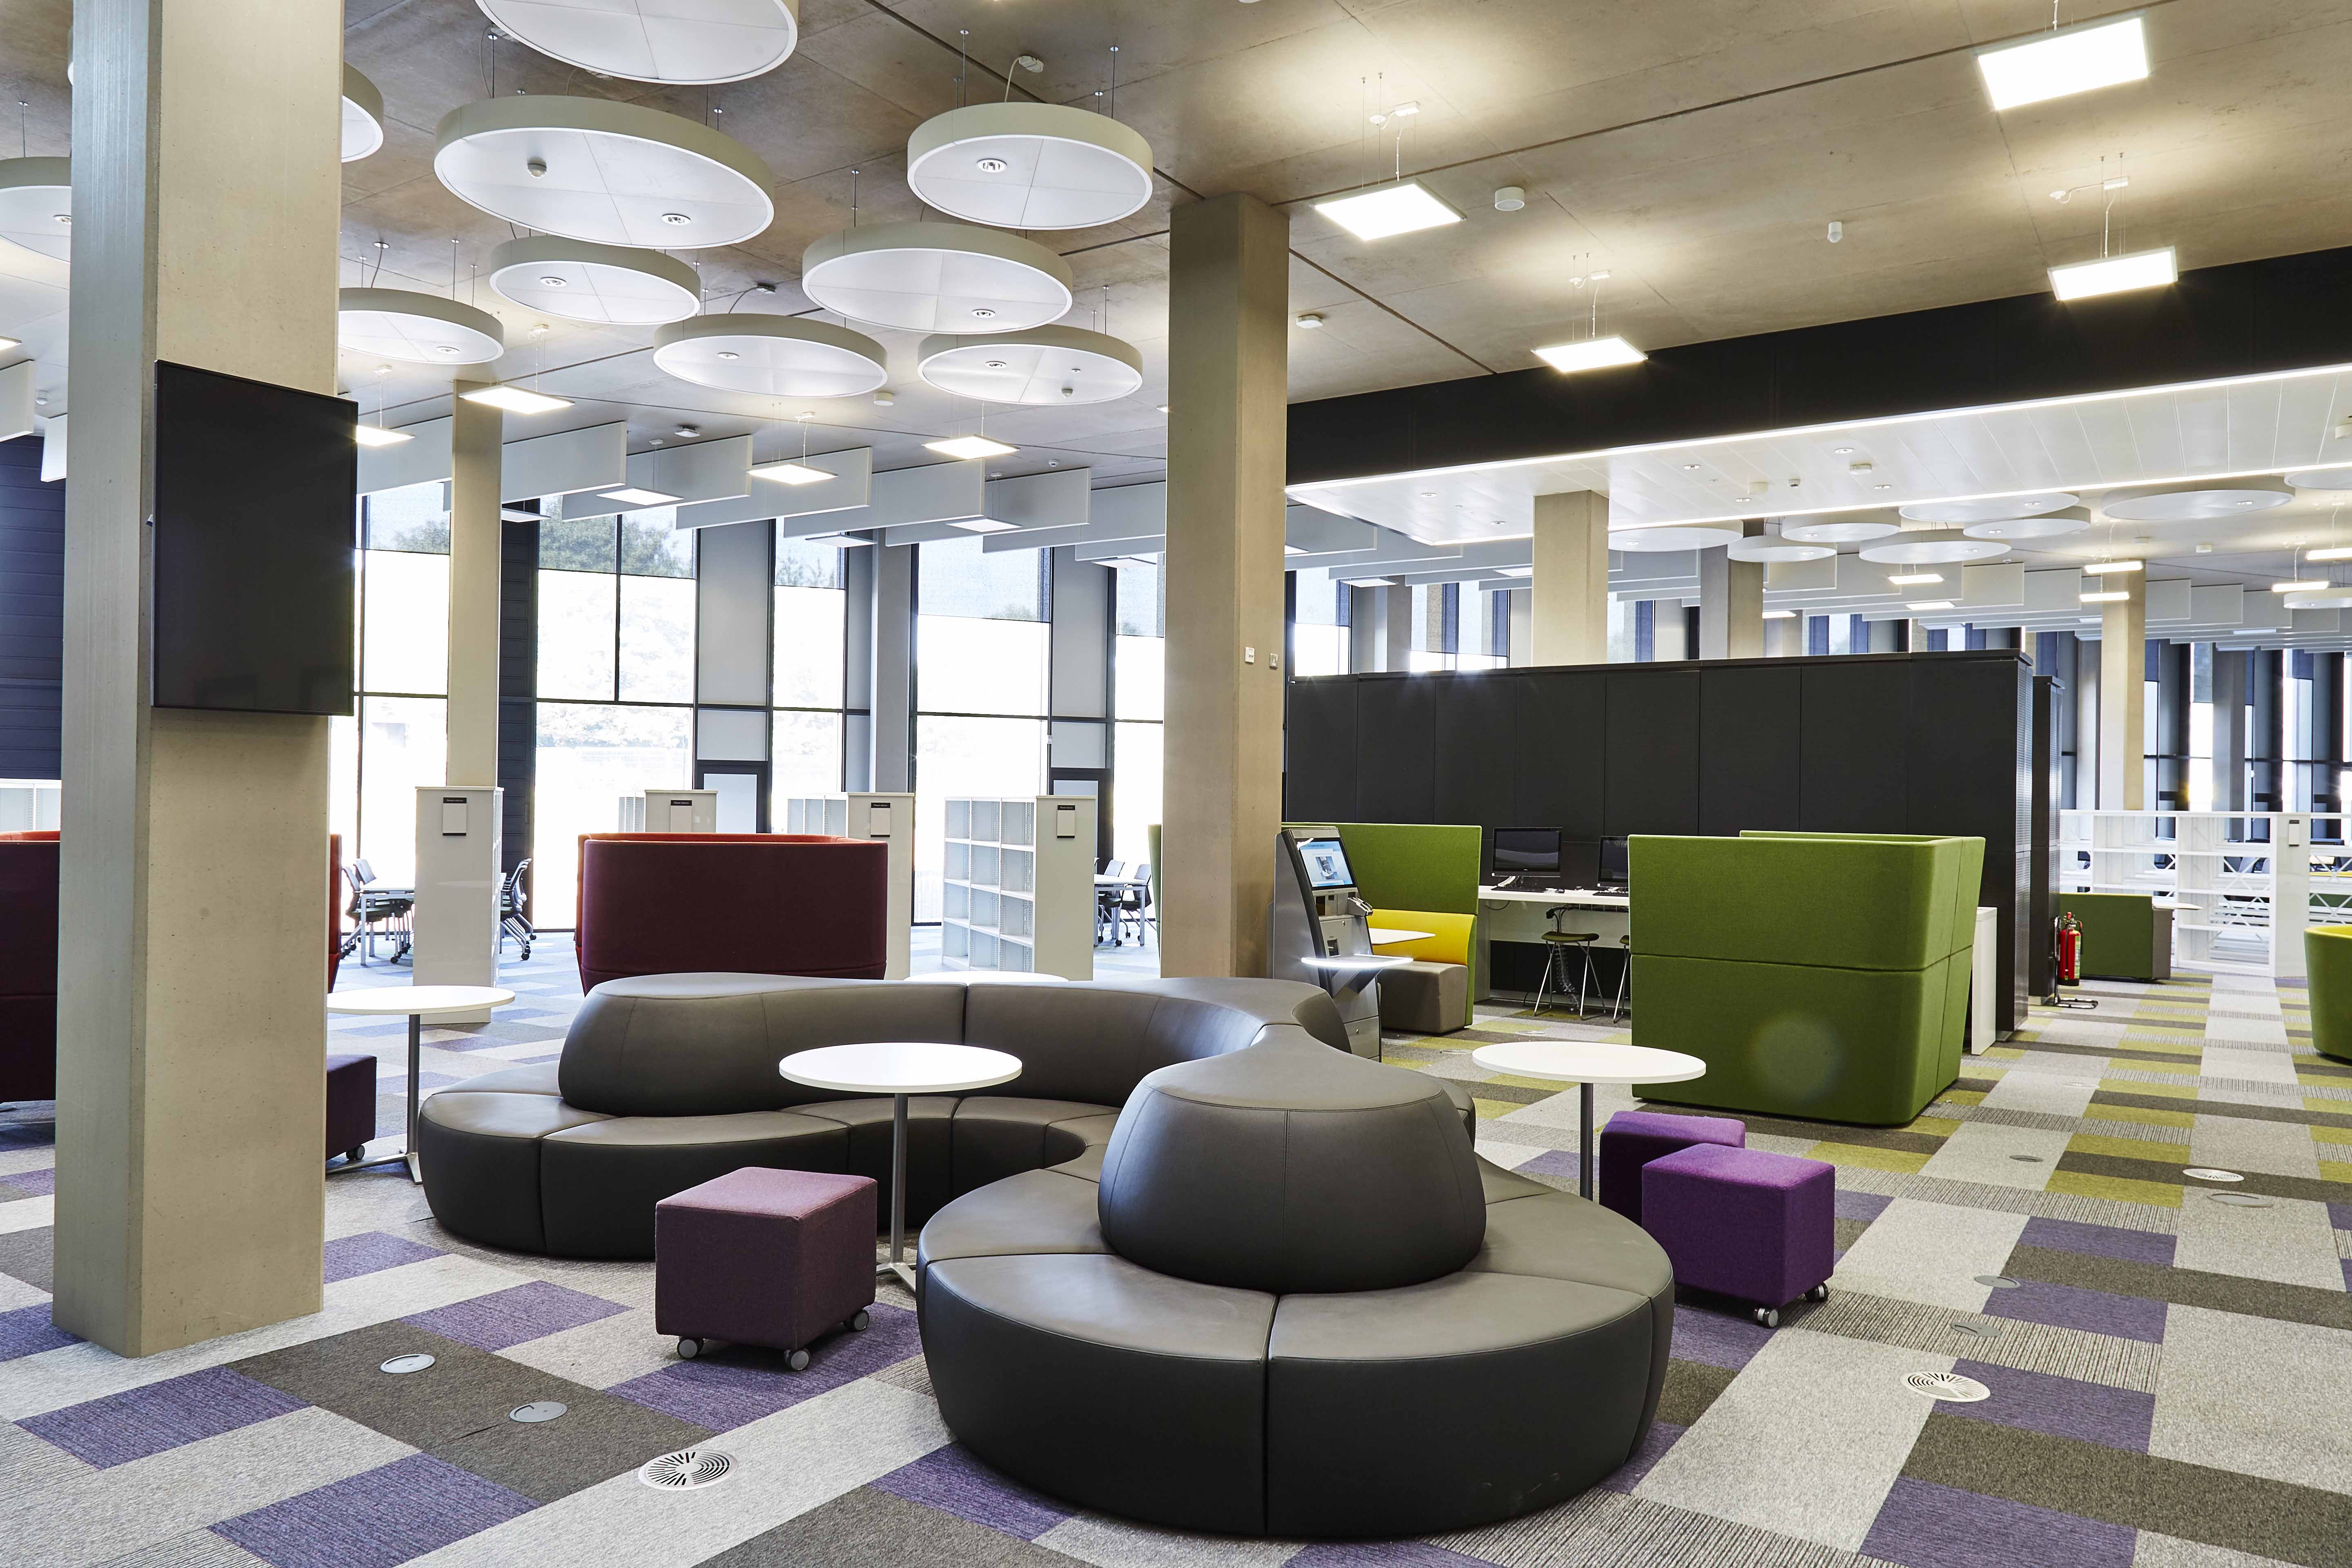 The New University Library 2016 Learning Environment Design